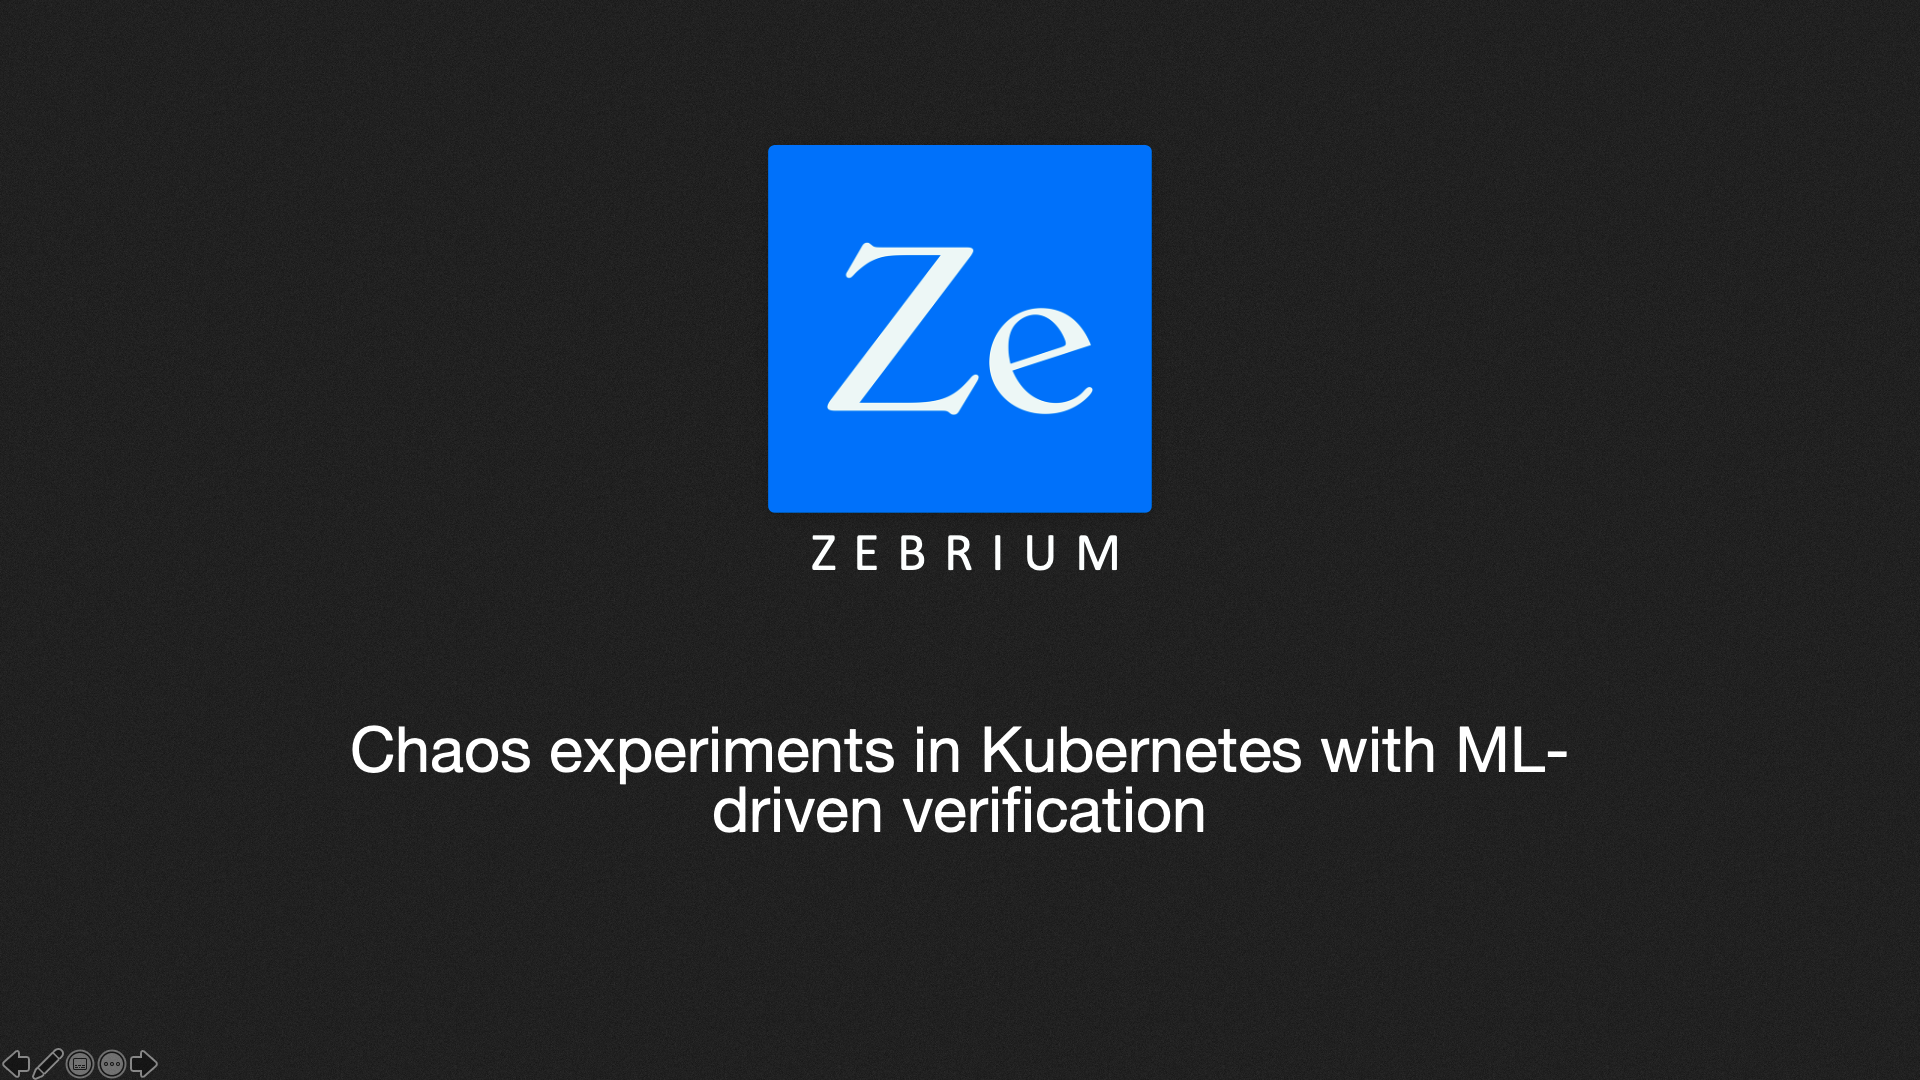 Chaos experiments in Kubernetes with ML-driven verification